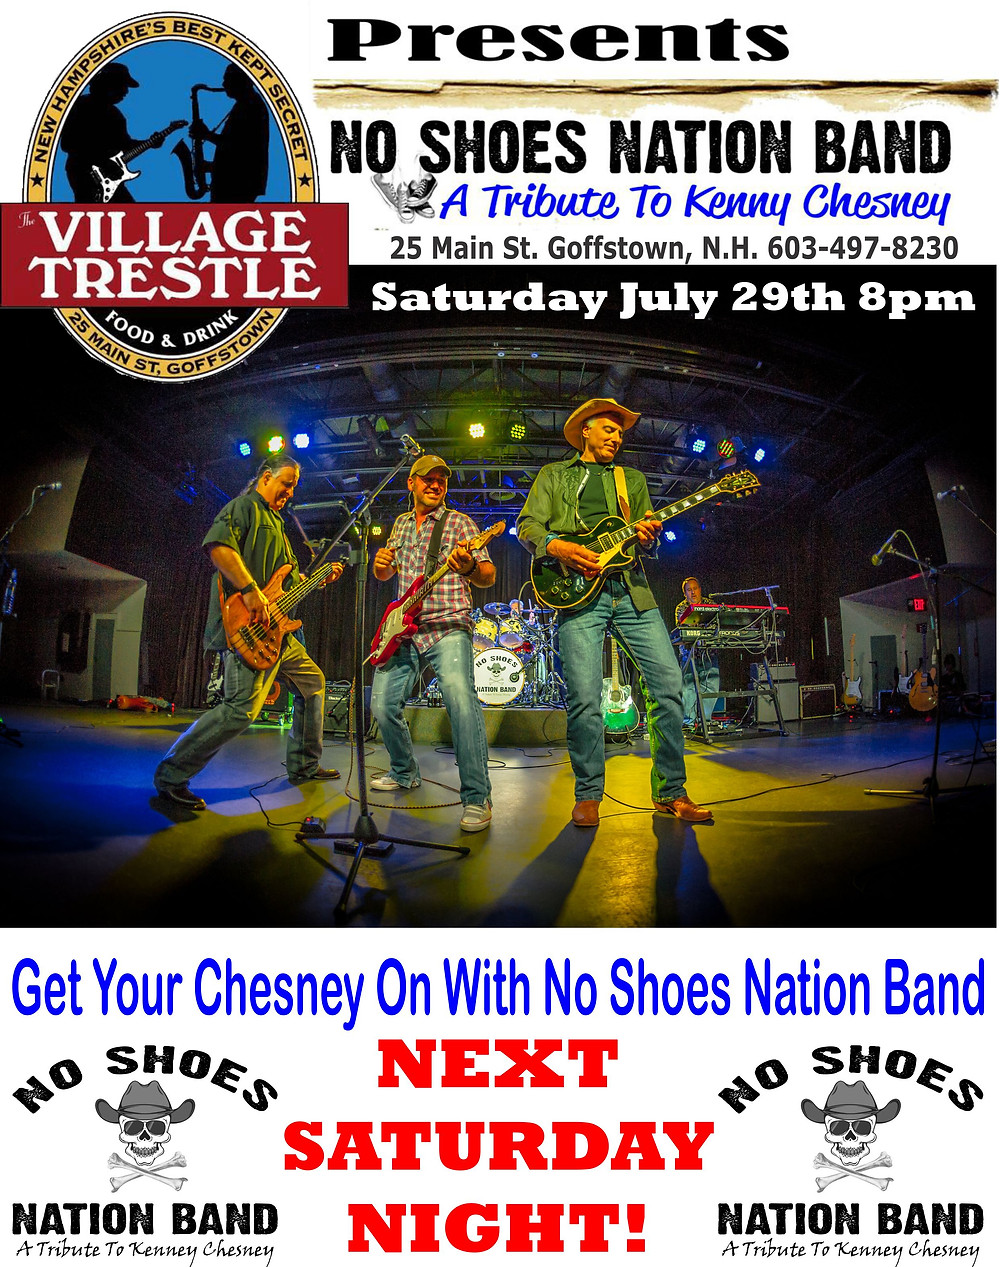 No Shoes Nation Band is returning to where it all started. Next Saturday Night July 29th @ 8pm Village Trestle  Goffstown, NH